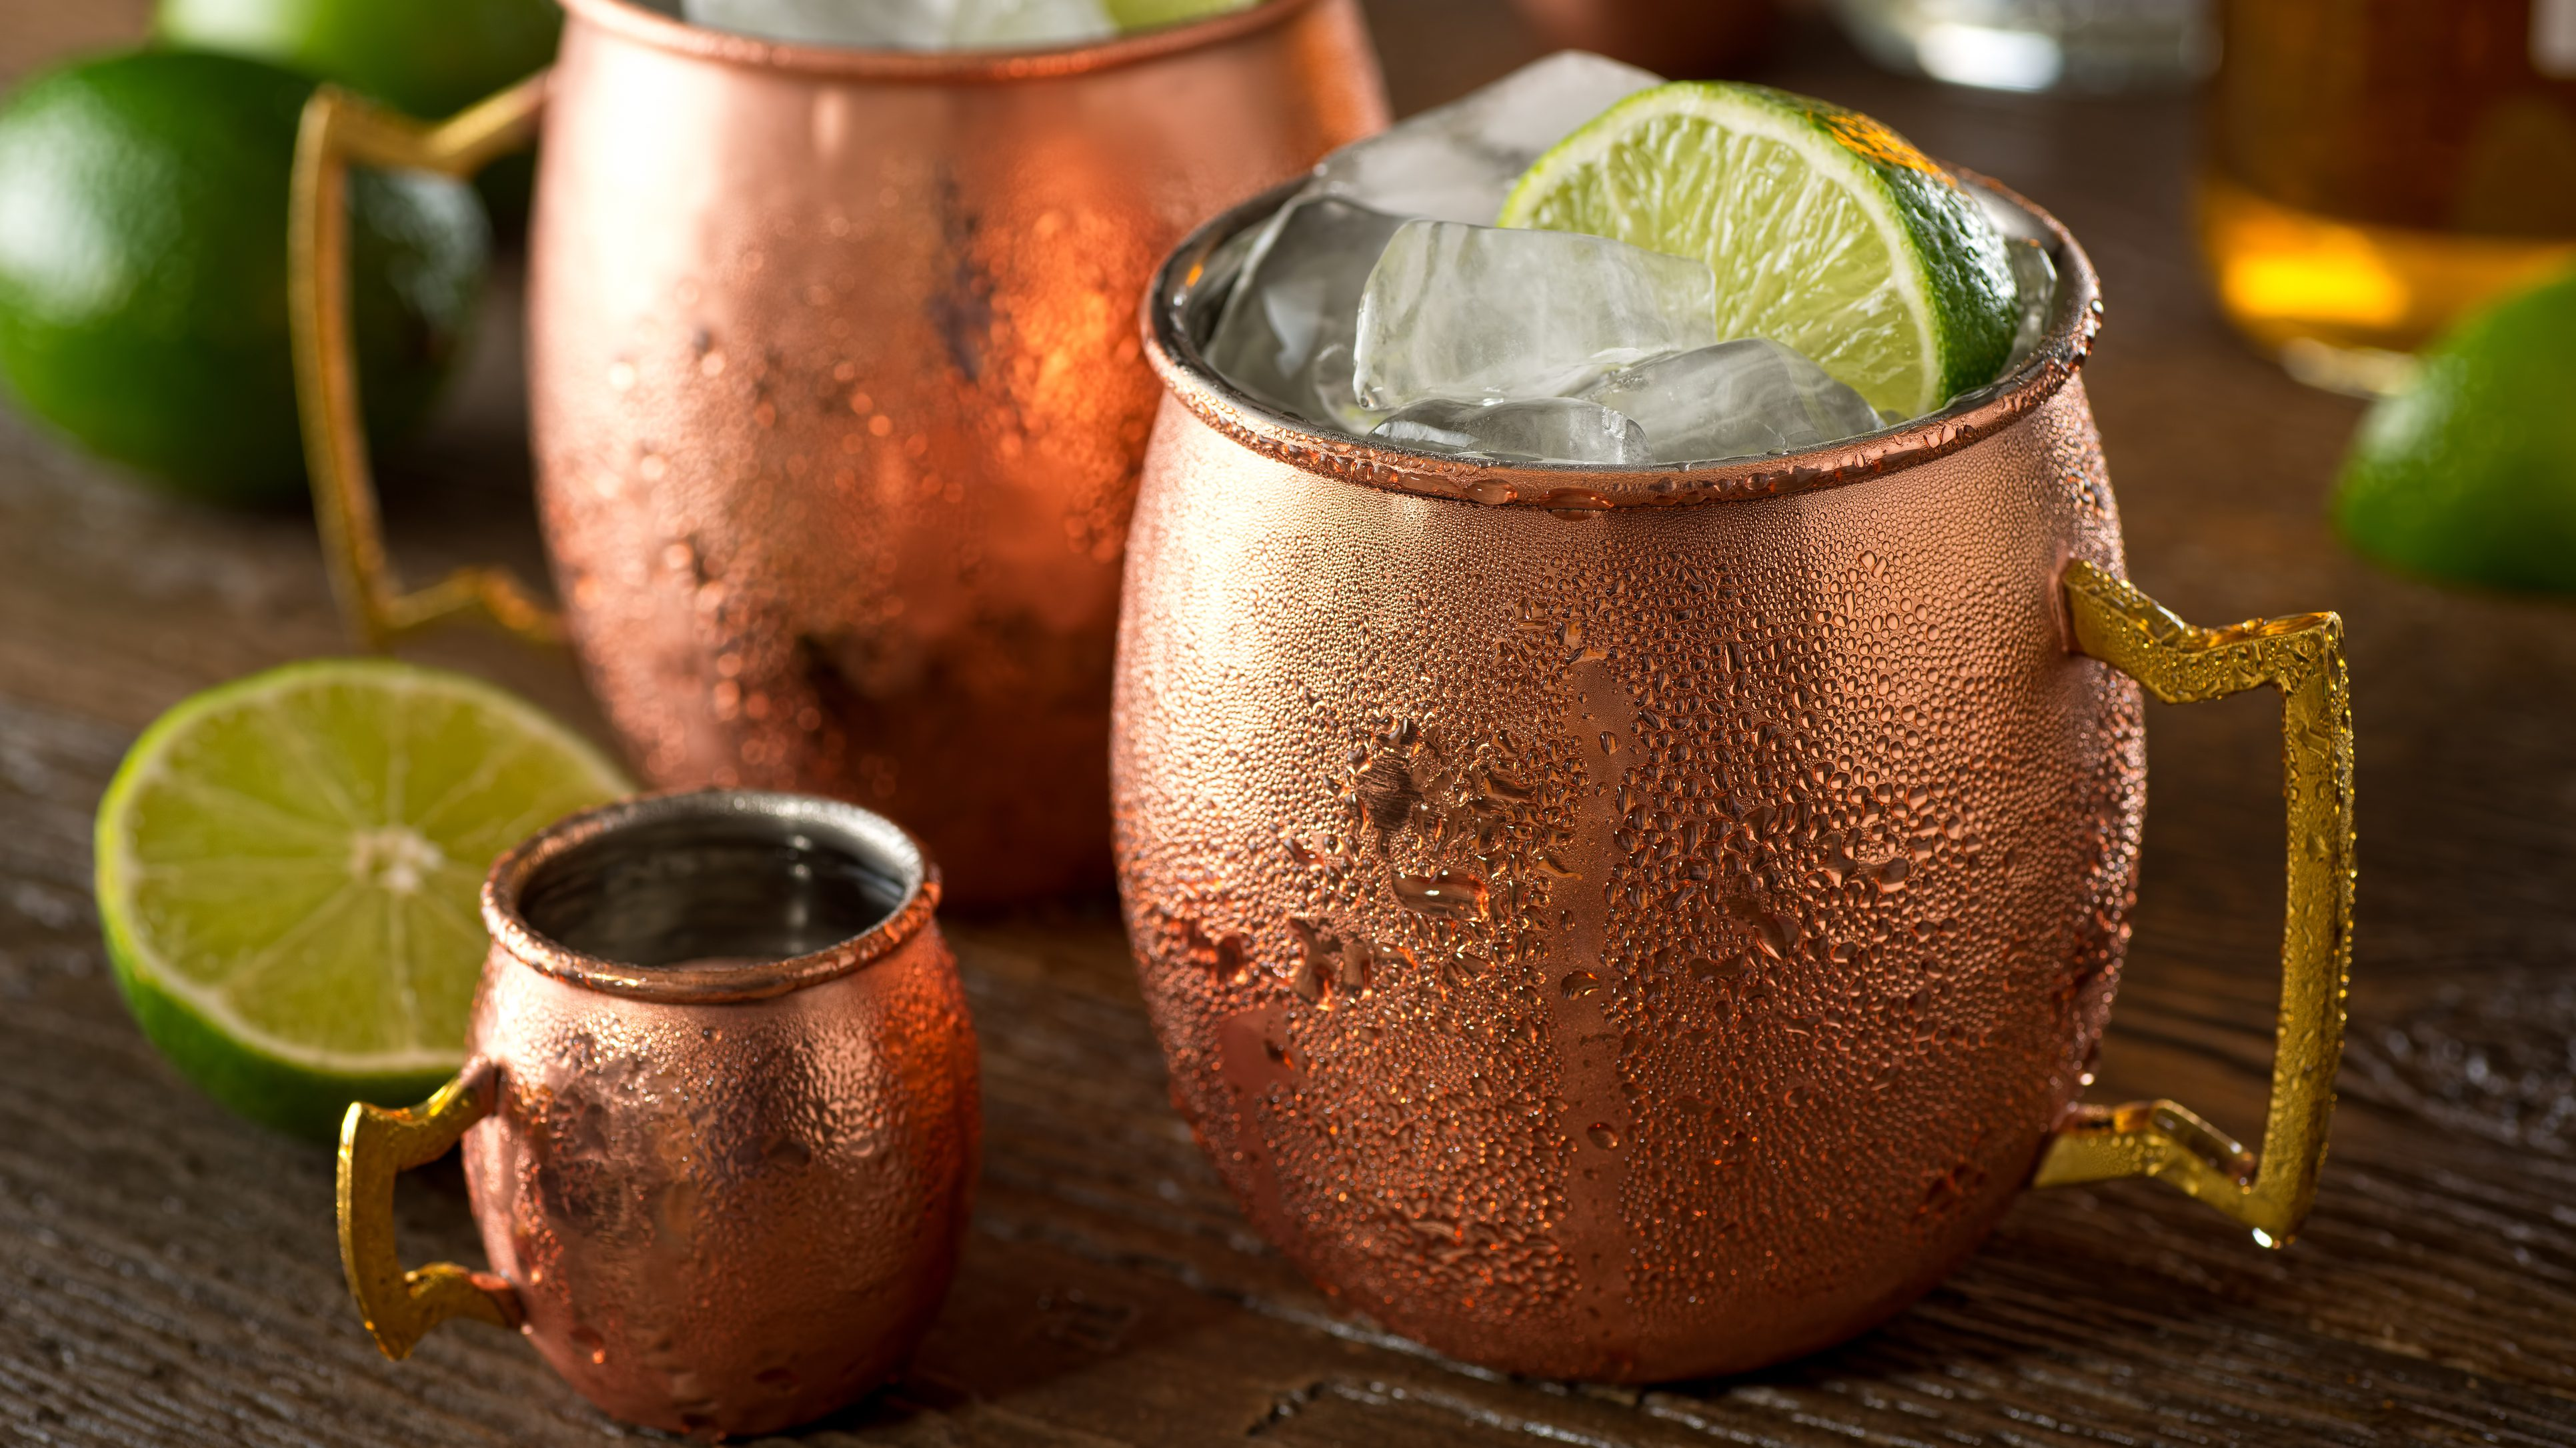 Moscow mule copper mugs may be toxic, officials say